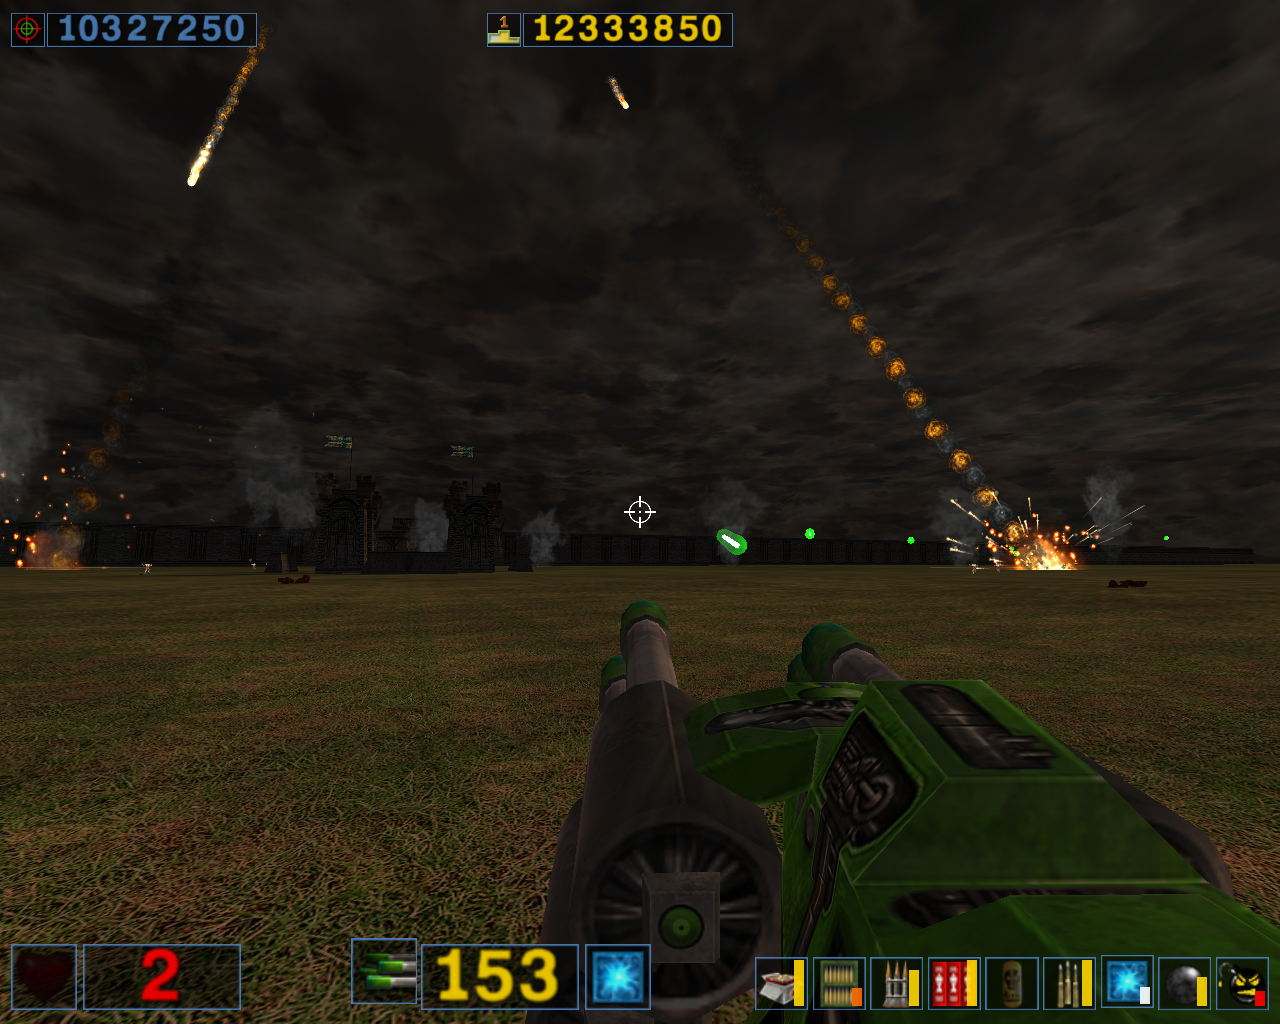 Serious Sam: The Second Encounter Windows Laser weapon and fire rain